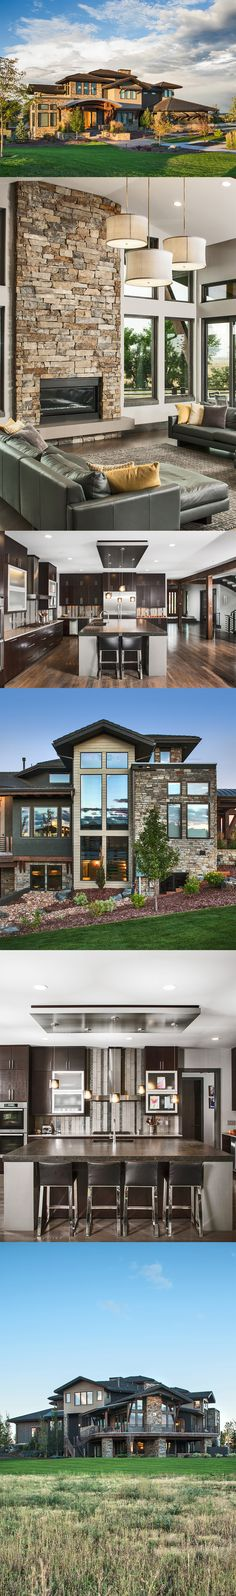 Residential photography. Modern luxury home in Broomfield, Colorado.